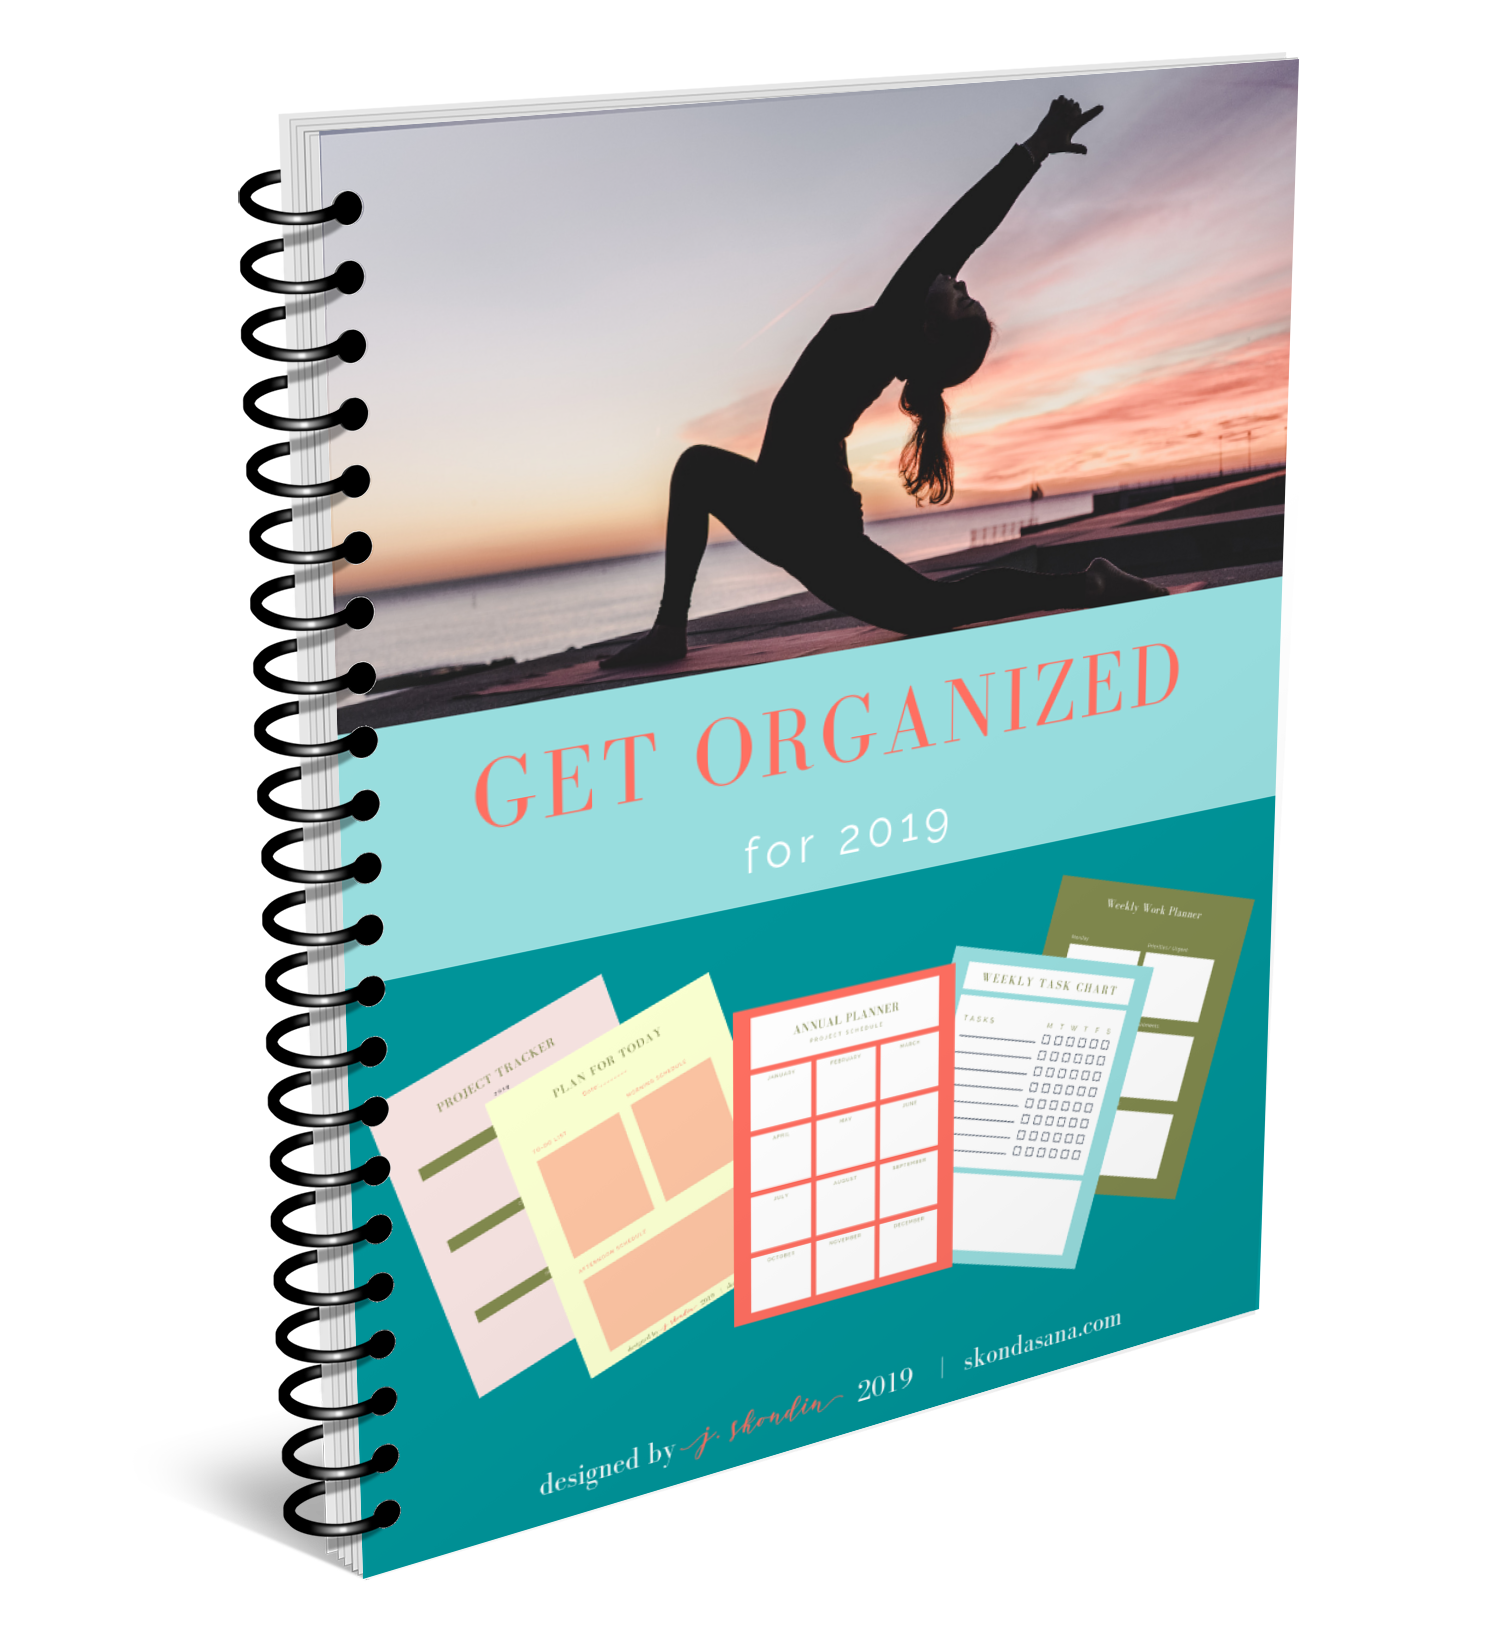 2019 Planning Worksheets Yoga and Wellness Marketing.png